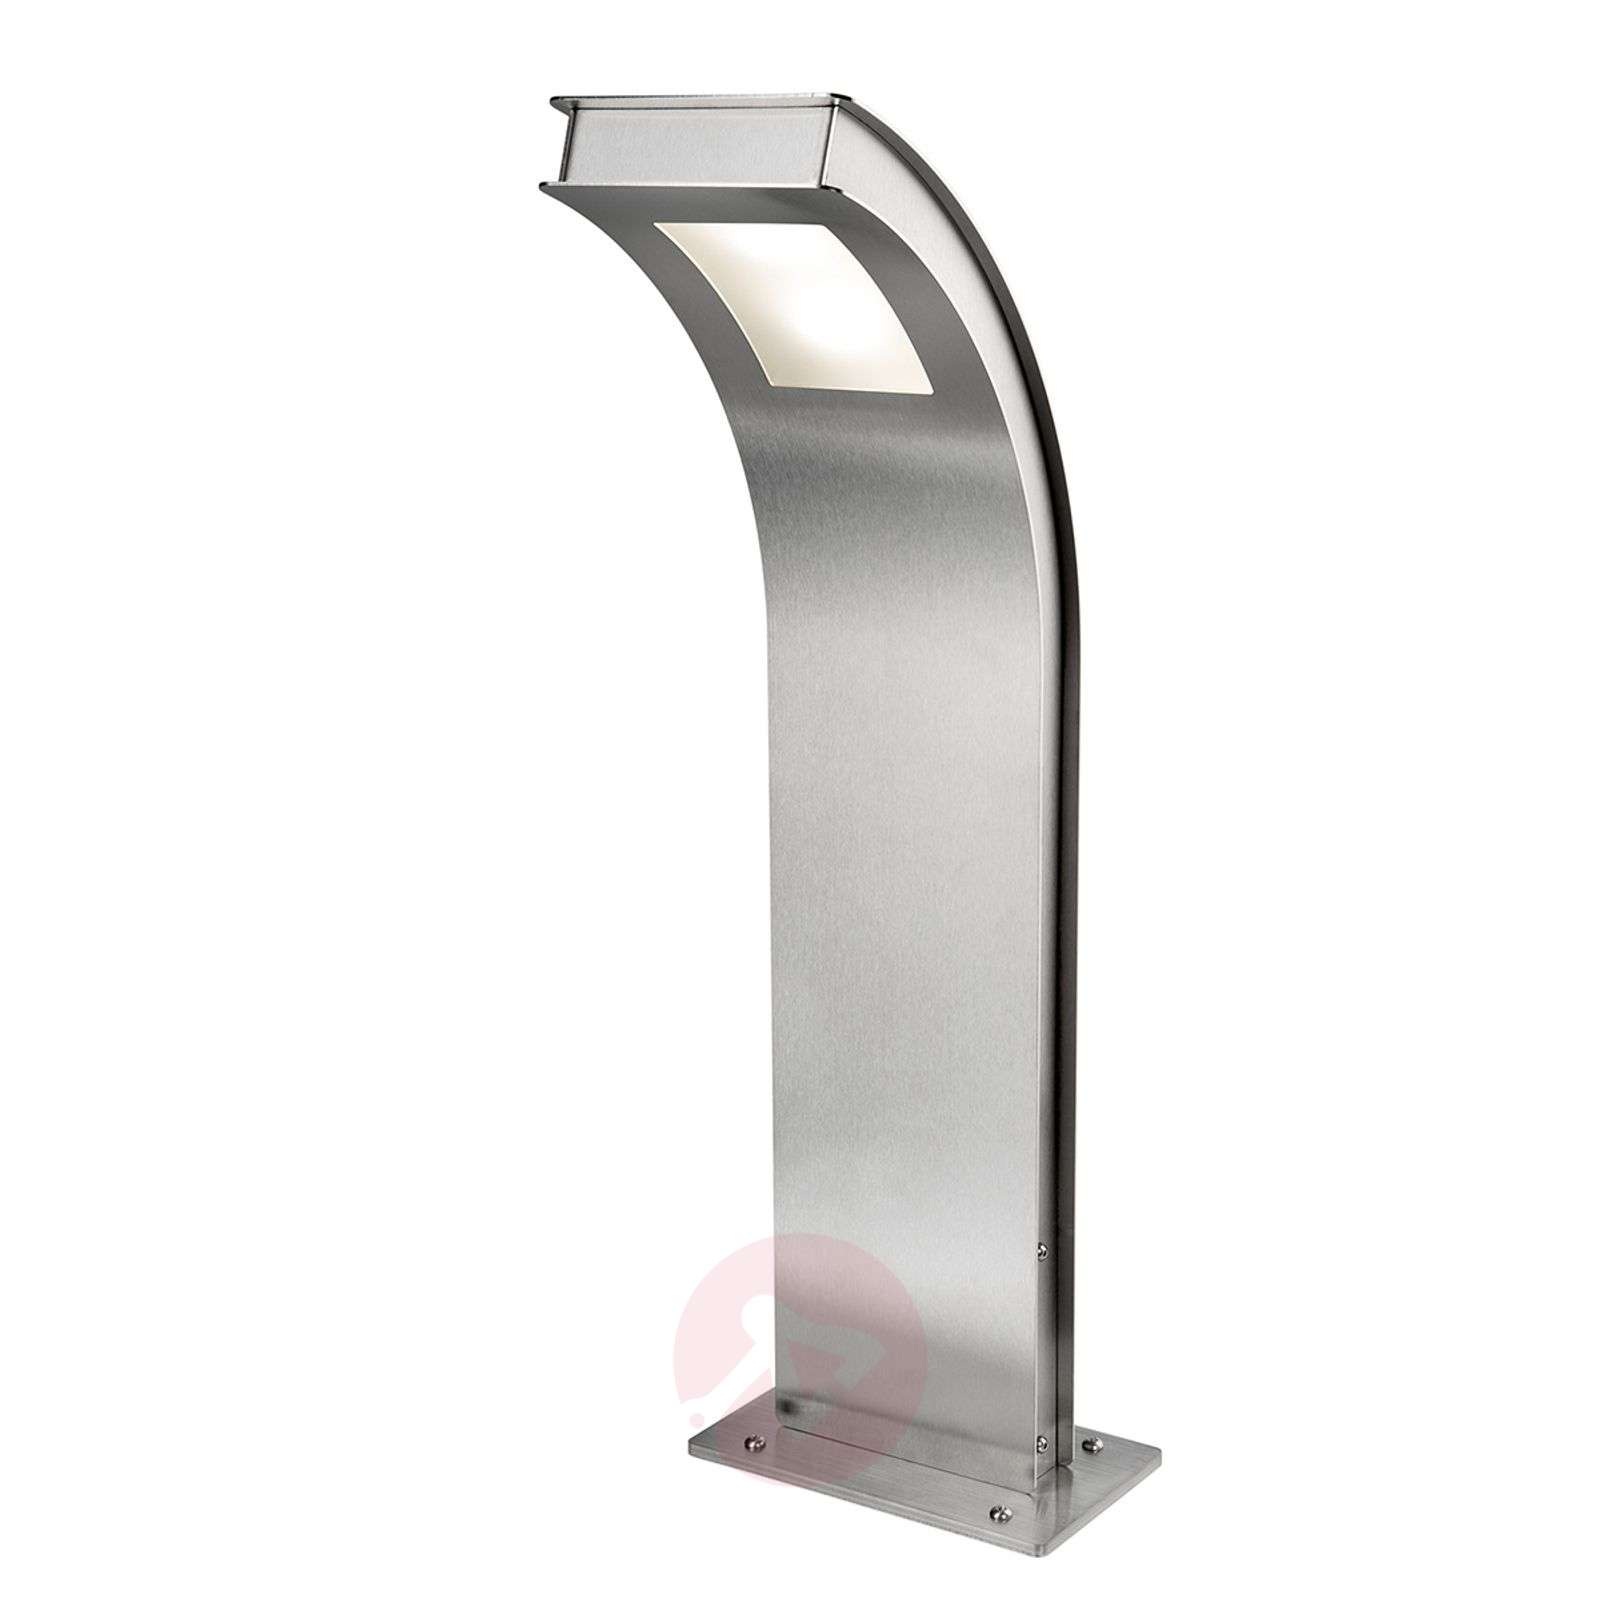 Pillar light Citos-Stand, stainless steel with LED-4502370-01